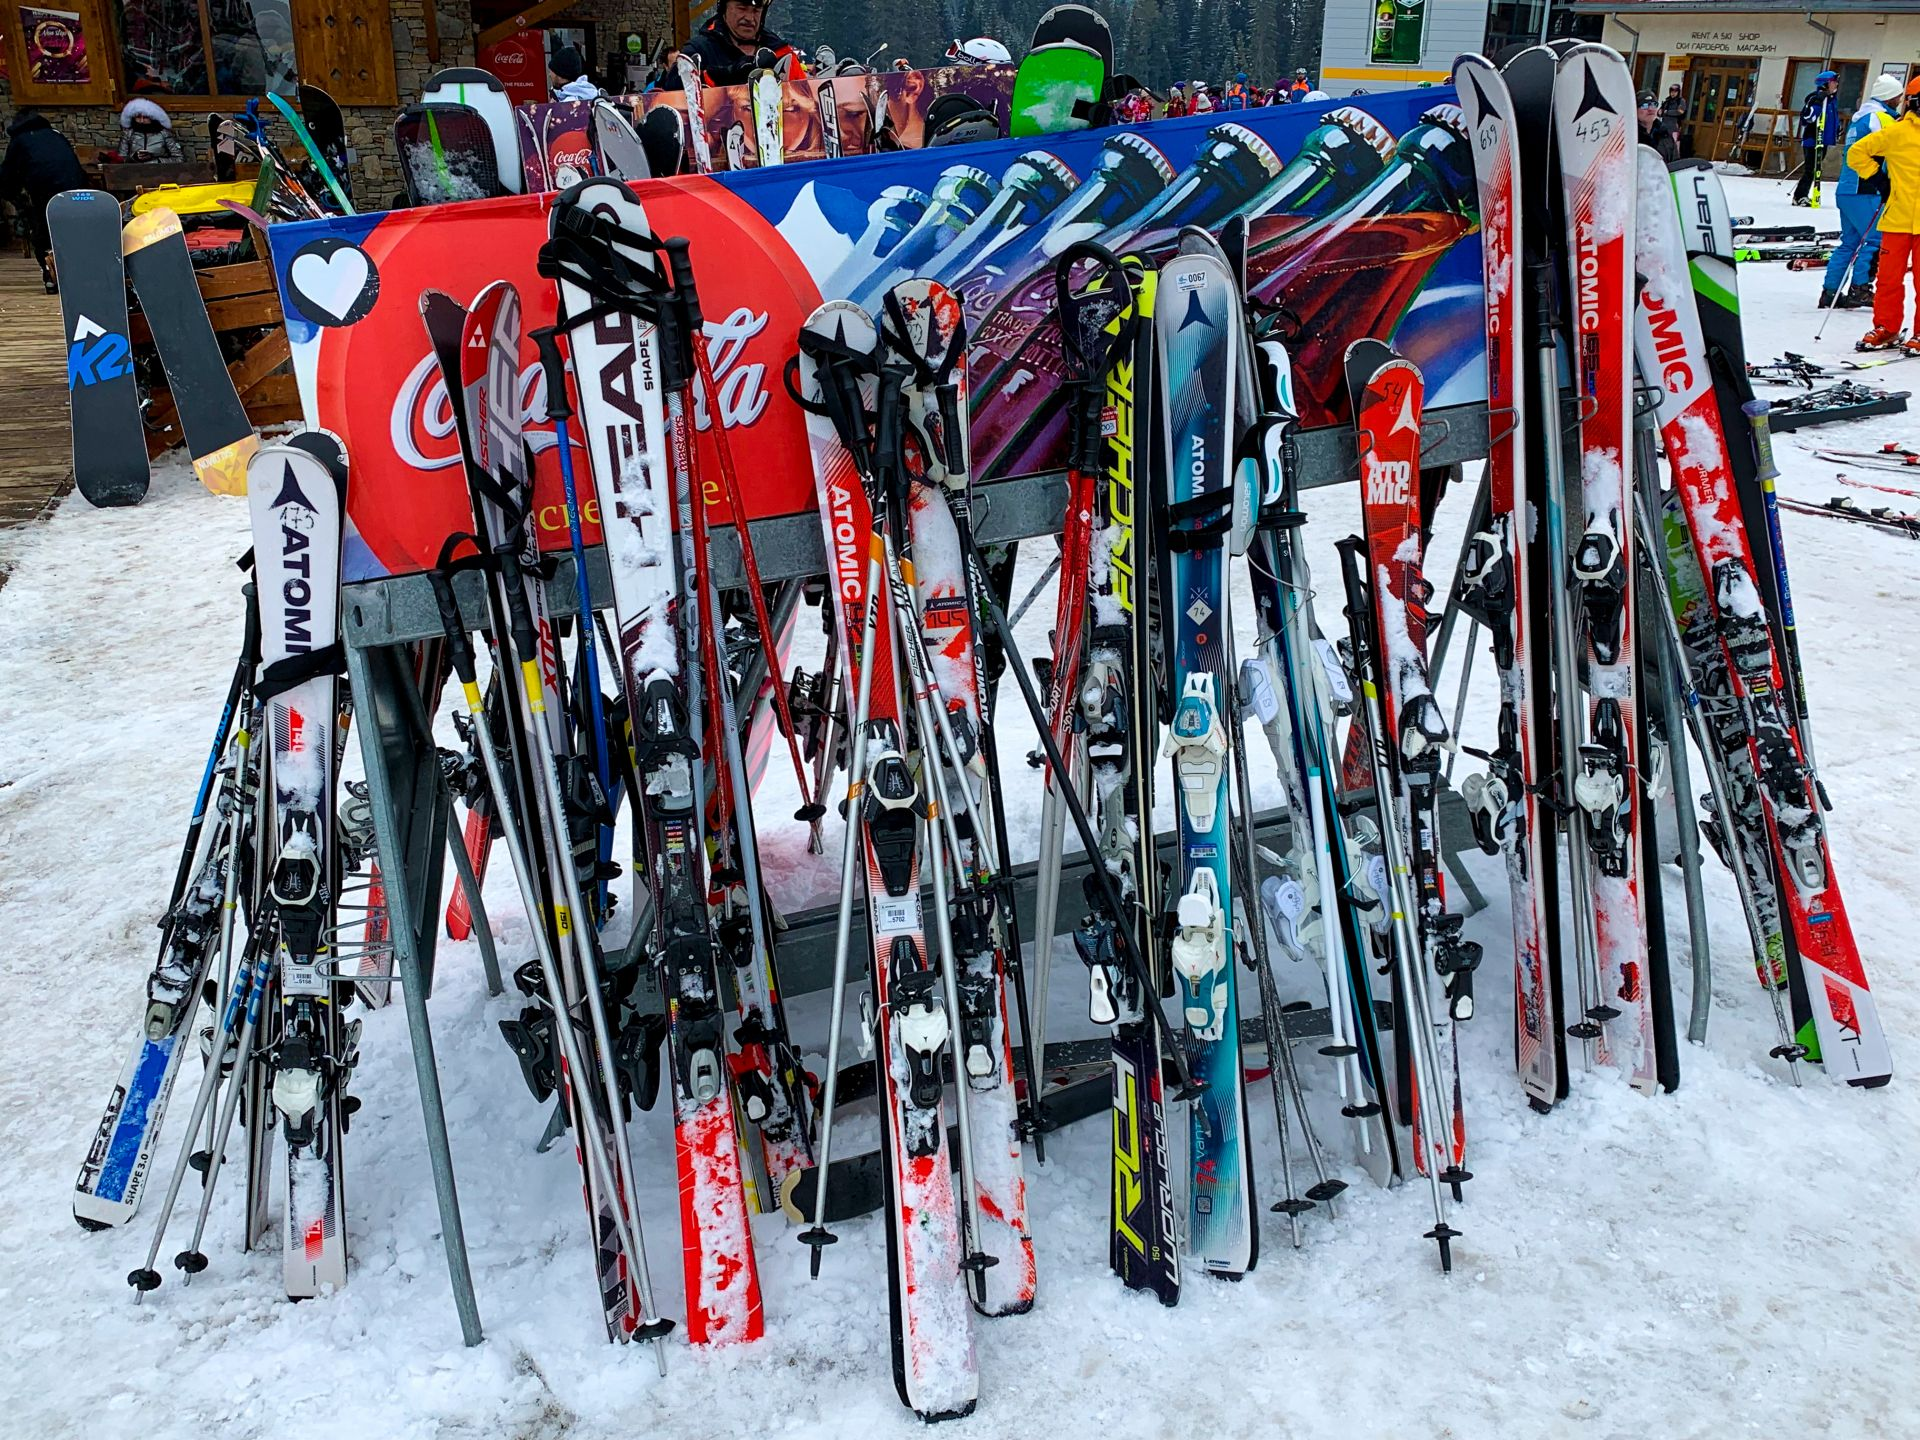 Numerous skis stood up in the racks on the ski slopes